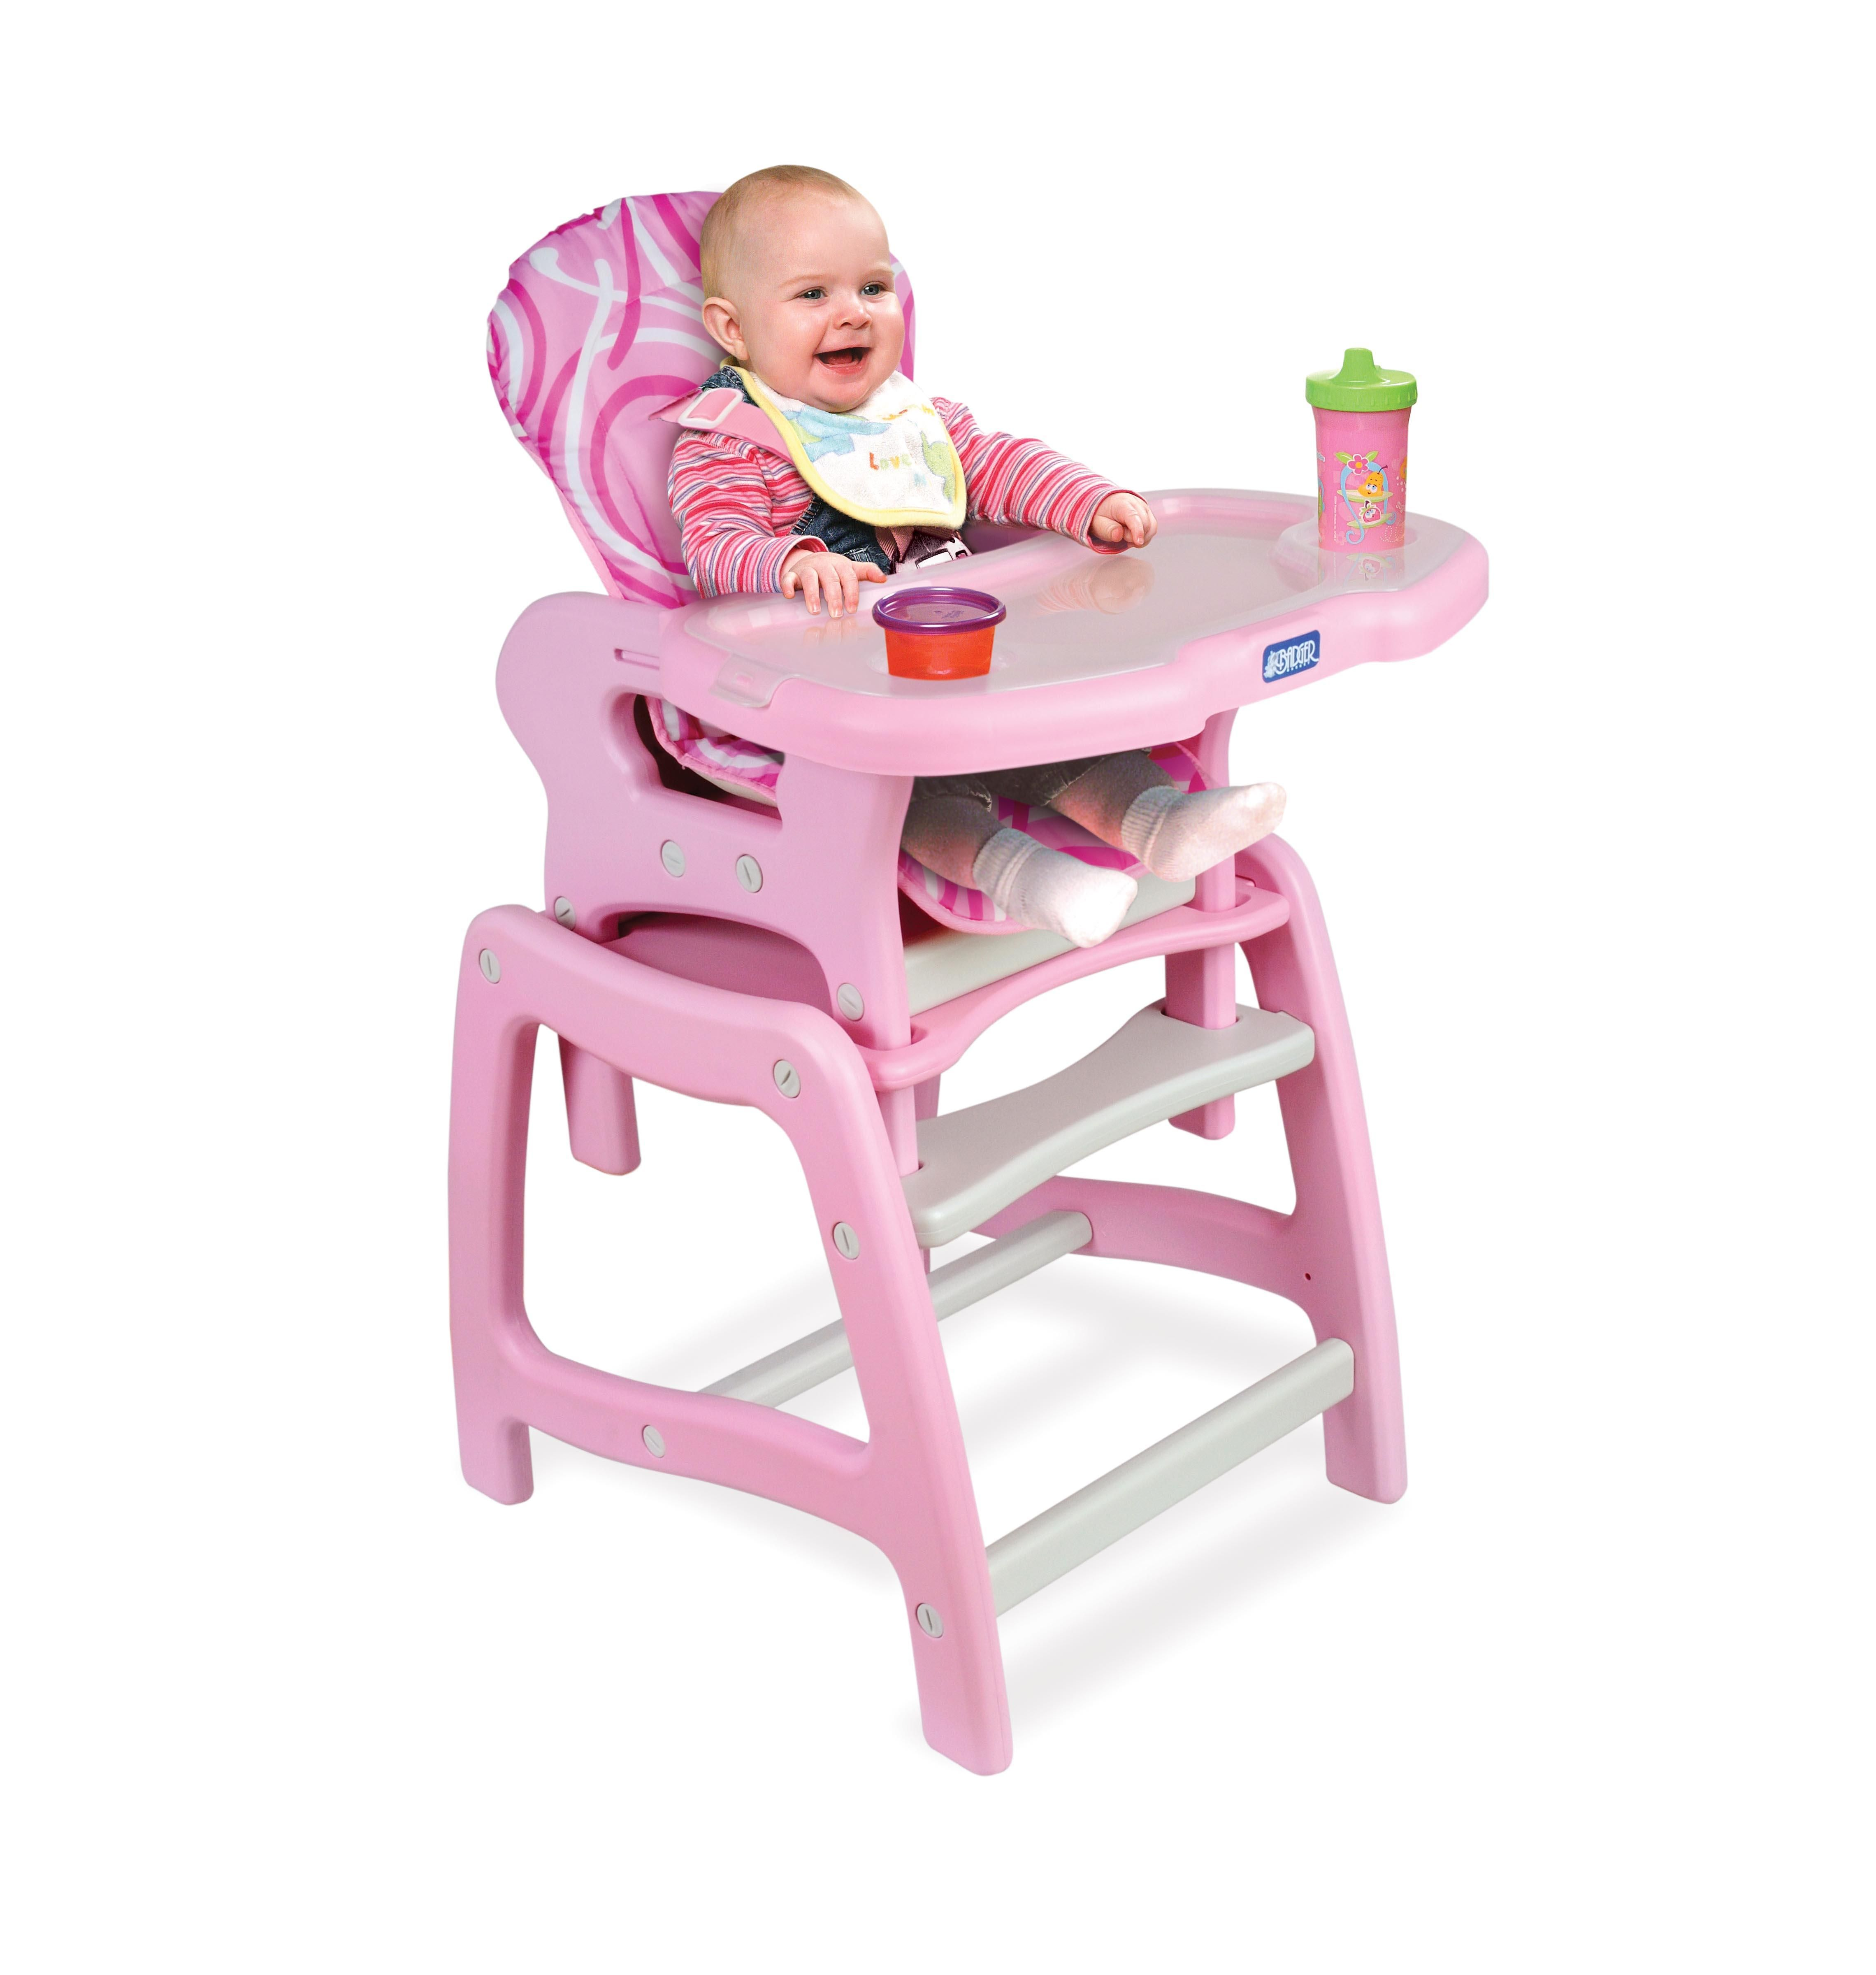 16 Cute Baby High Chairs for Boys and Girls Sweet Pink